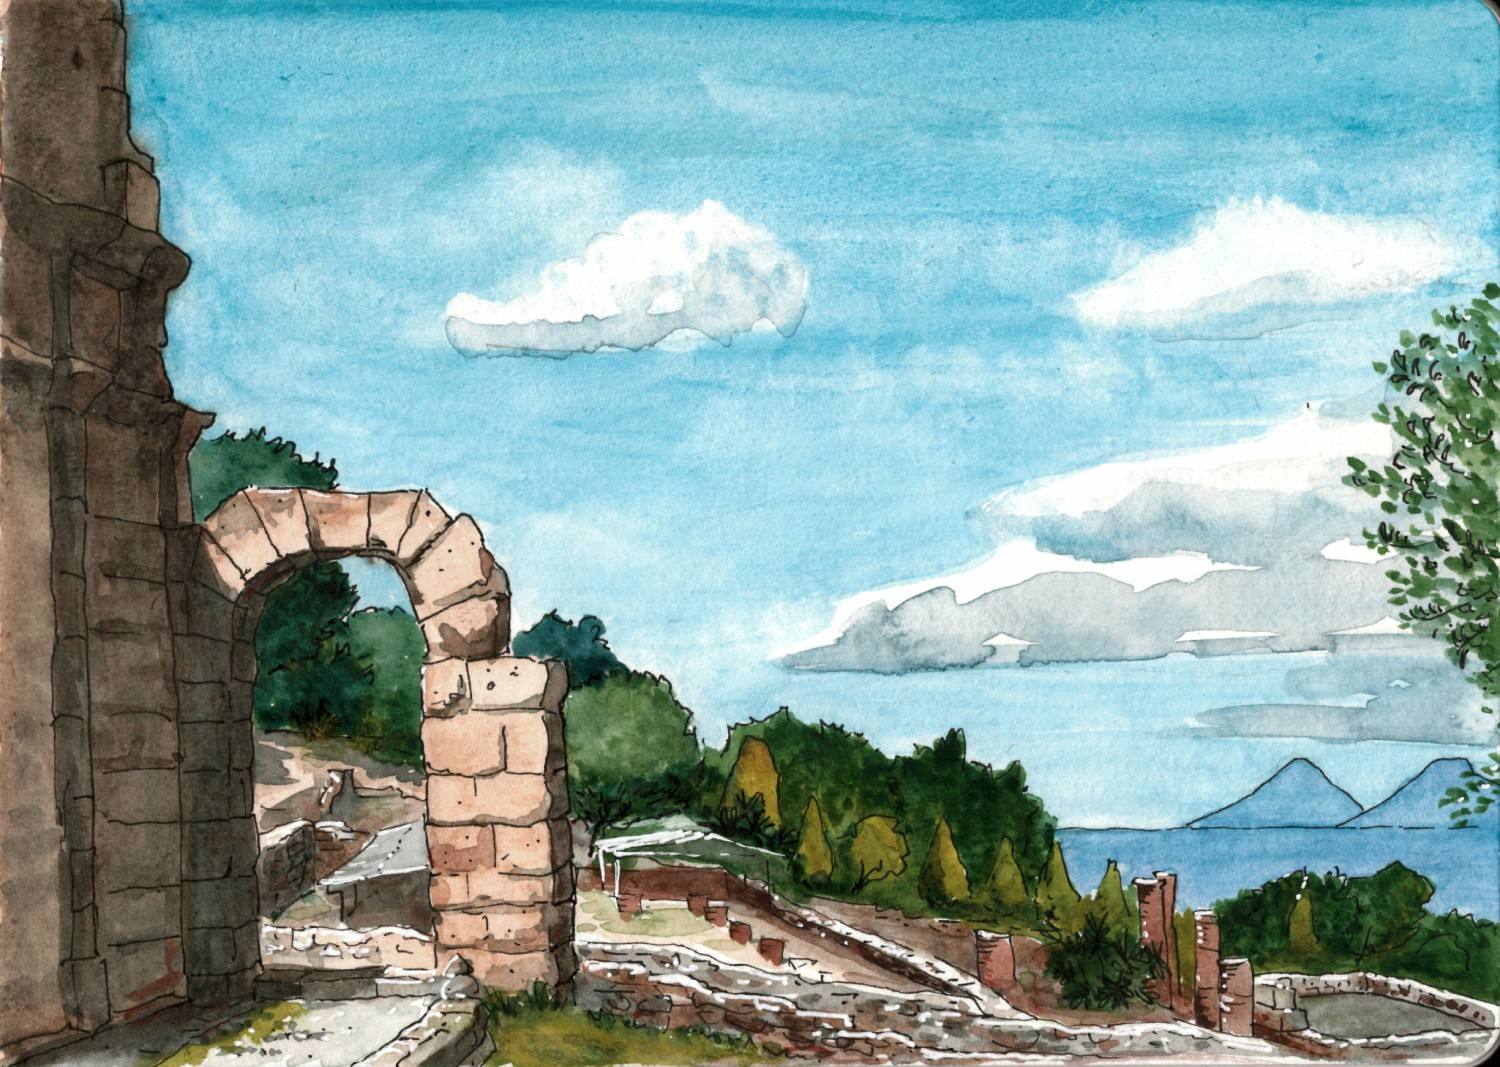 The Archaeological Park of Tindari is a great place. There are remains of the city built by Greeks and further expanded by Romans. The view from here is spectacular. Unfortunately I botched the sky while coloring, and therefore I need to go back there and draw again.